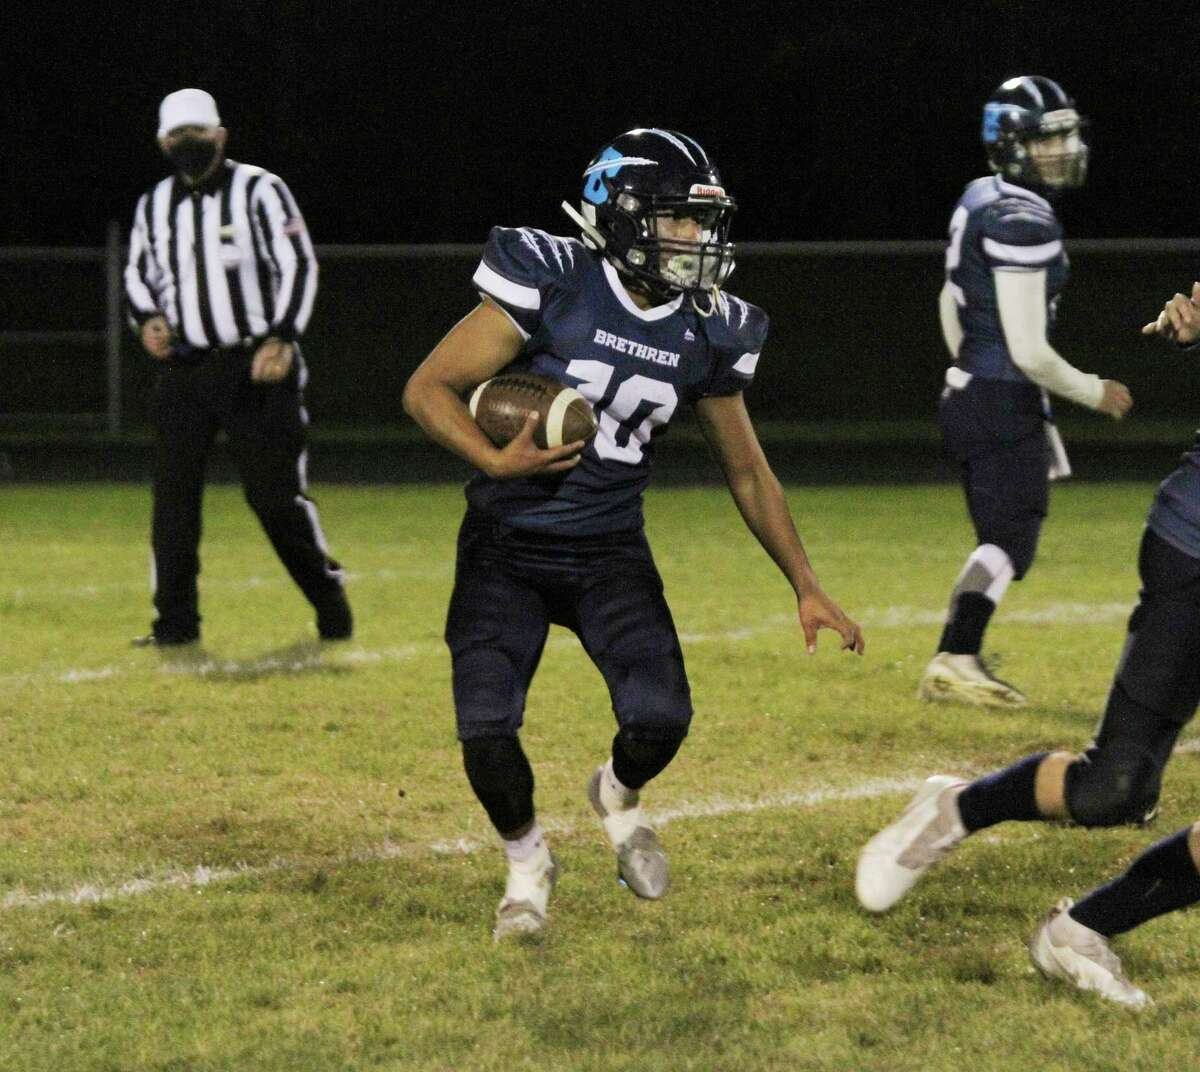 Brethren's Kenny King looks for room to run Friday night during the Bobcats' victory over Manistee Catholic Central. (News Advocate file photo)